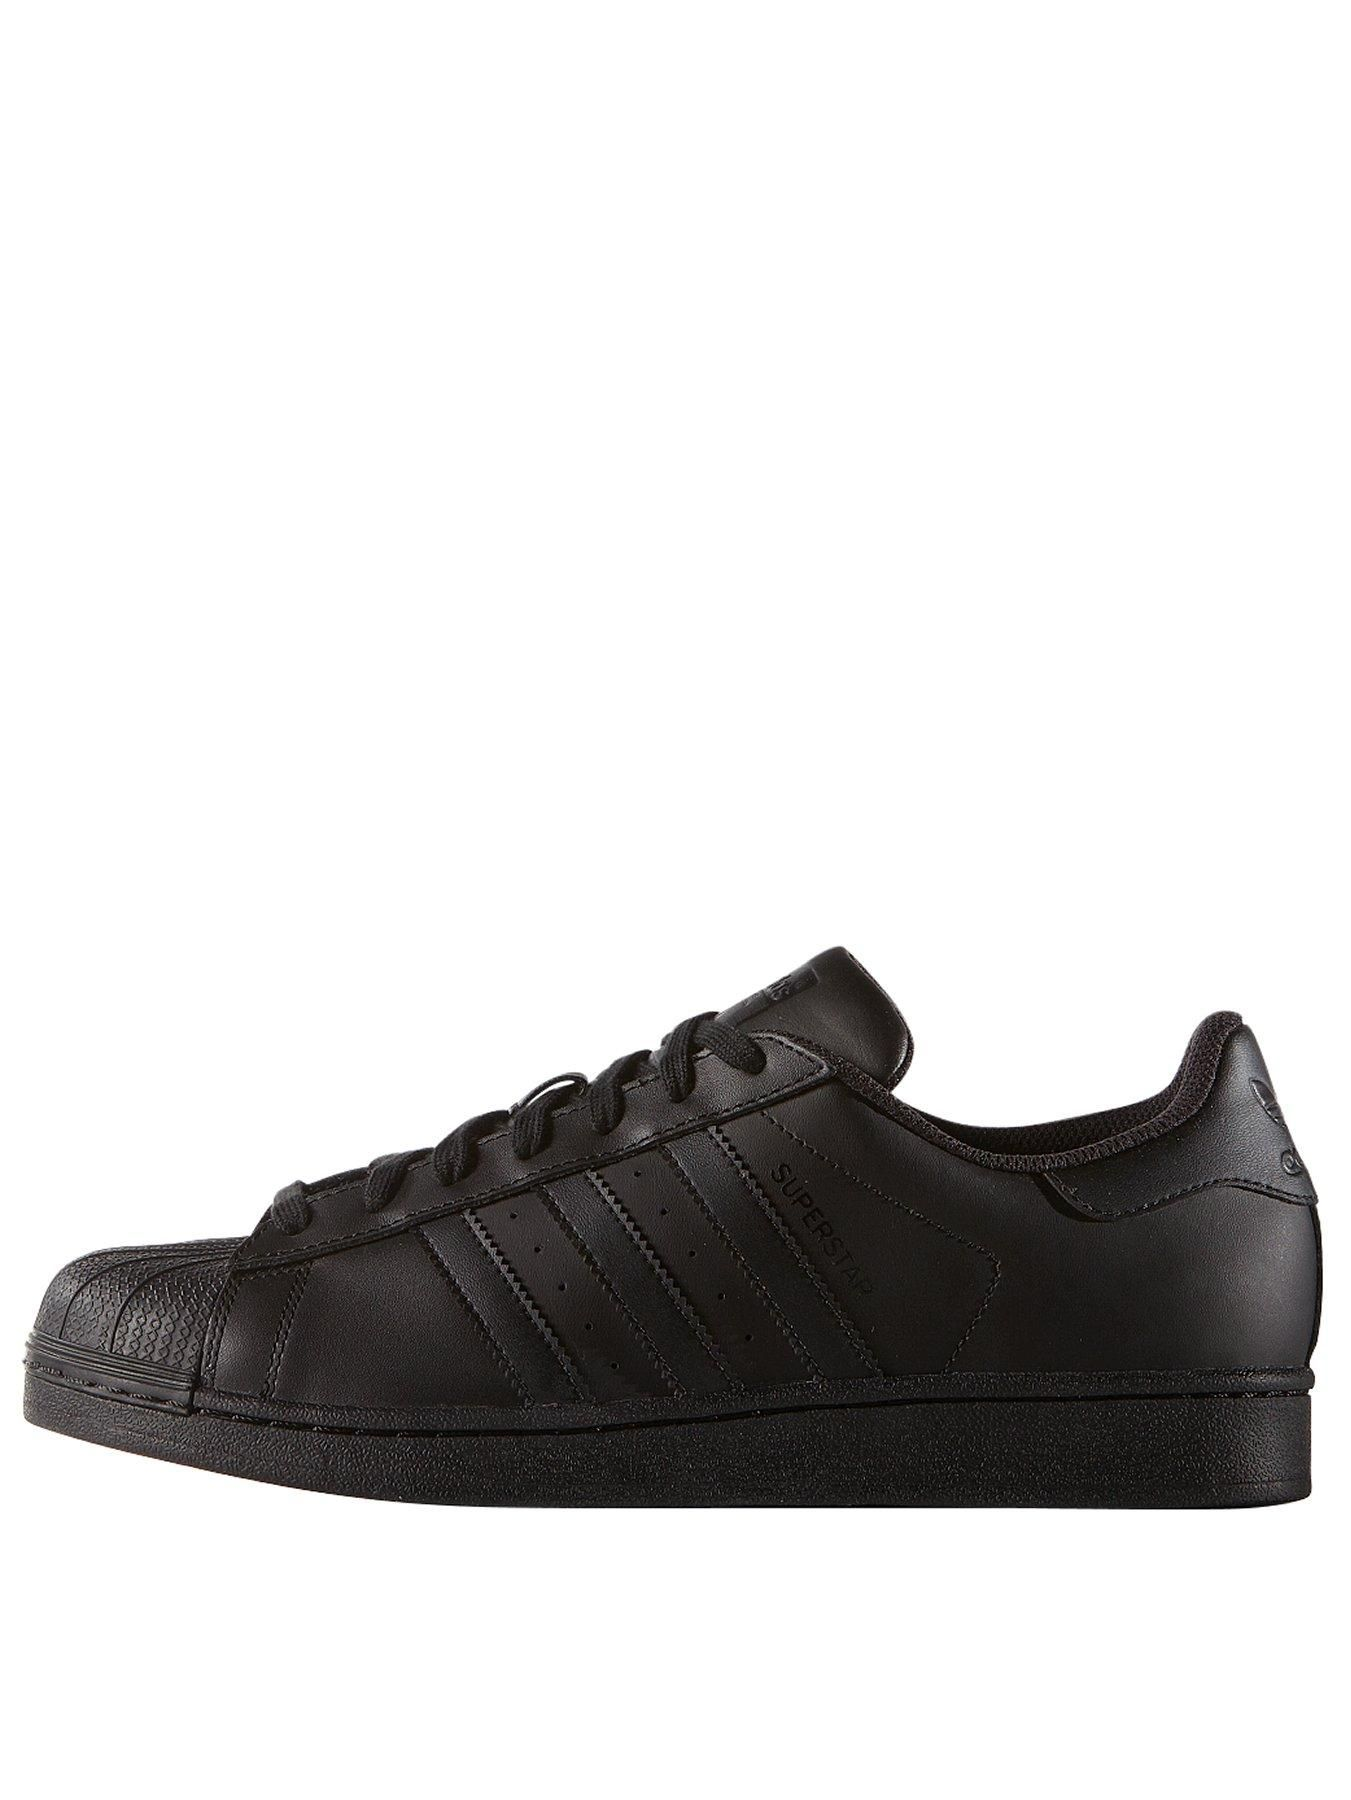 new products 69aea f60f4 adidas Originals Superstar Foundation Mens Trainers – BlackFrom the  excitement of the courts in the  70s to the bustling modern metropolis the  Superstar ...